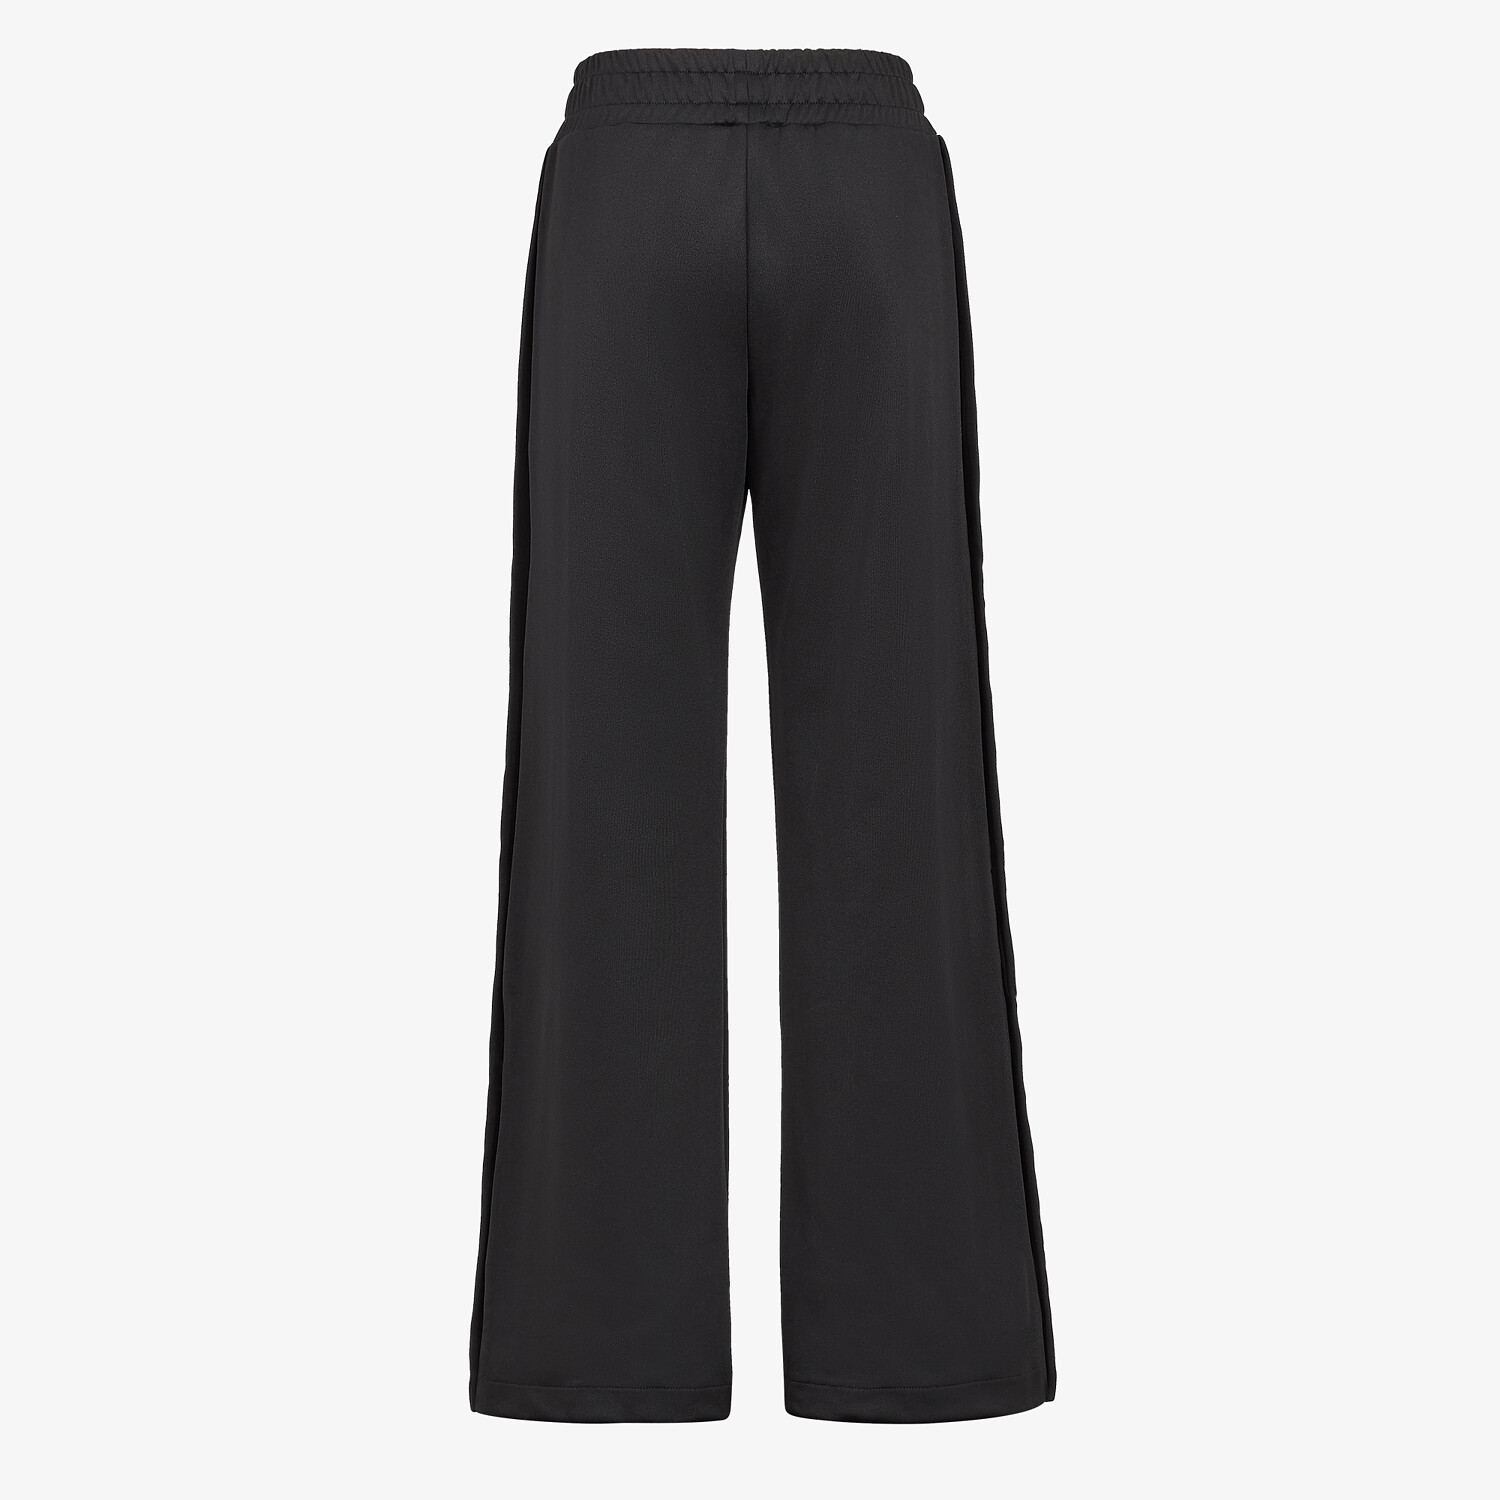 FENDI PANTS - Black piqué jersey pants - view 2 detail